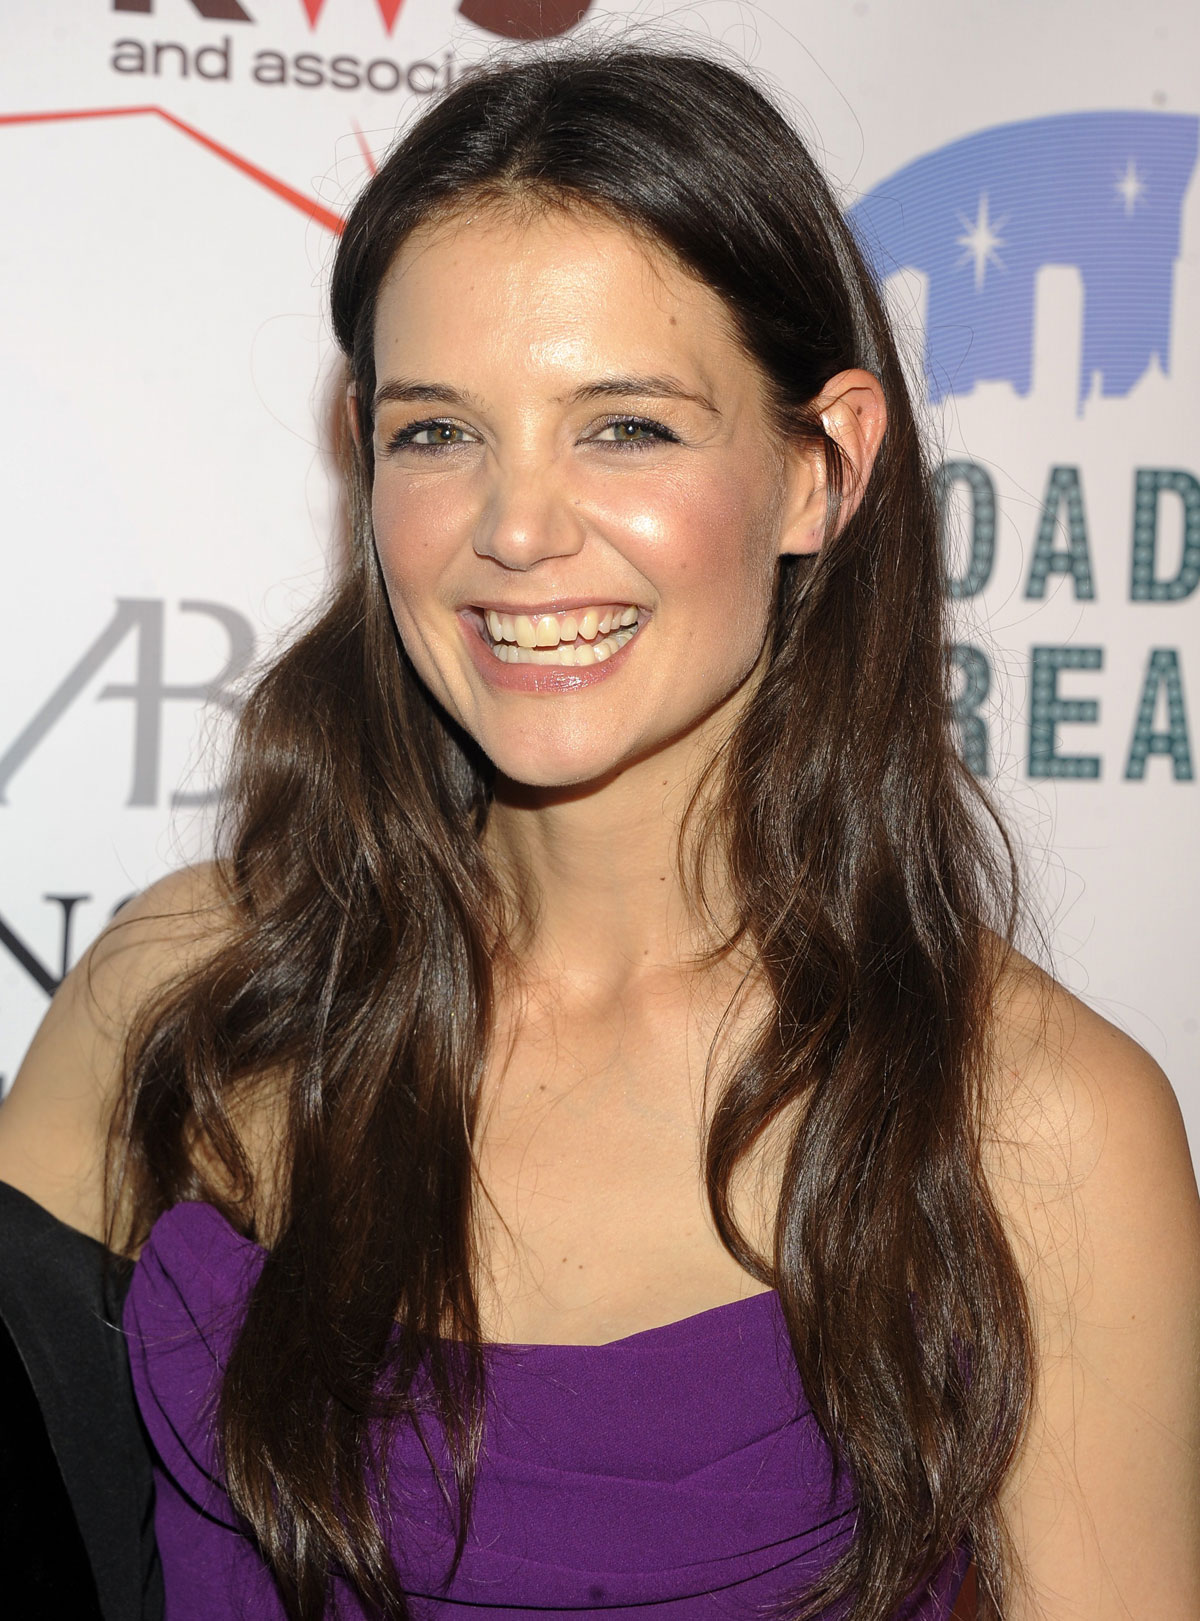 KATIE HOLMES at The Broadway Dreams Foundation's Gala in New York Katie Holmes